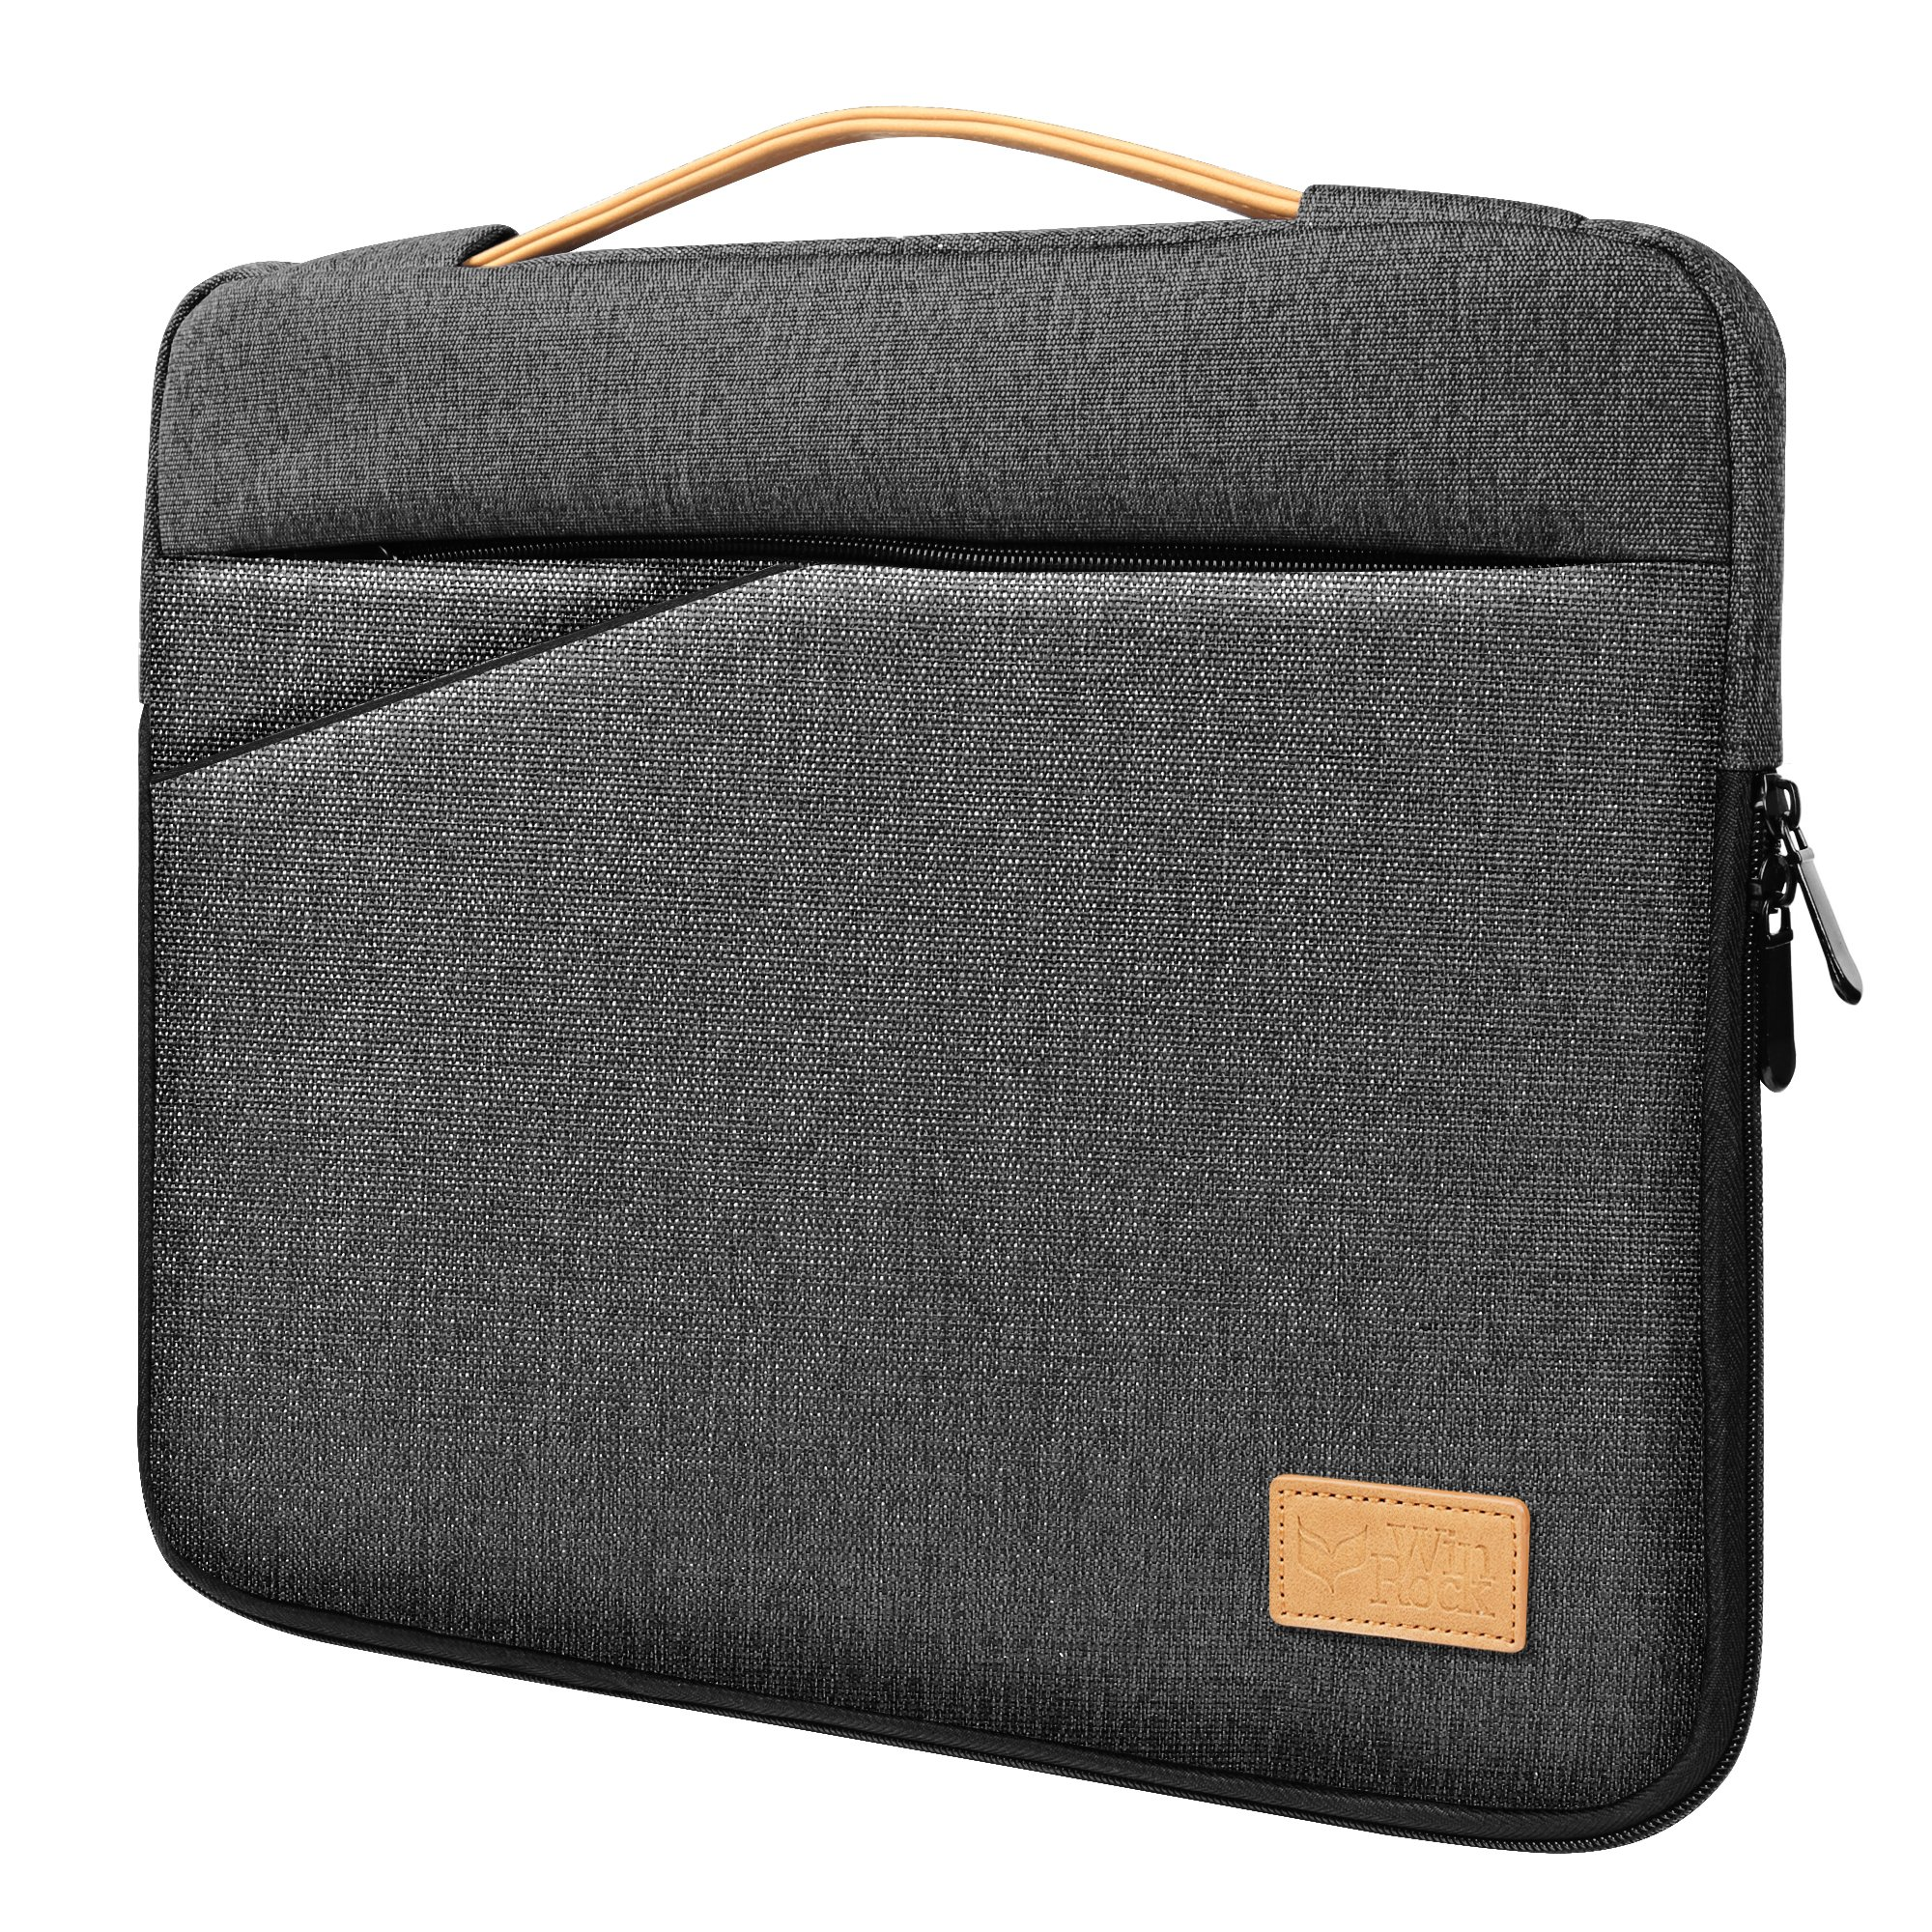 393afc6a1a7e Winrock 15 Inch Laptop Sleeve Case for 15 - 15.6 Inch Macbook Pro/ProRetina  HP Dell Acer Asus Thinkpad Laptops Notebooks Ultrabooks Tablets, with ...